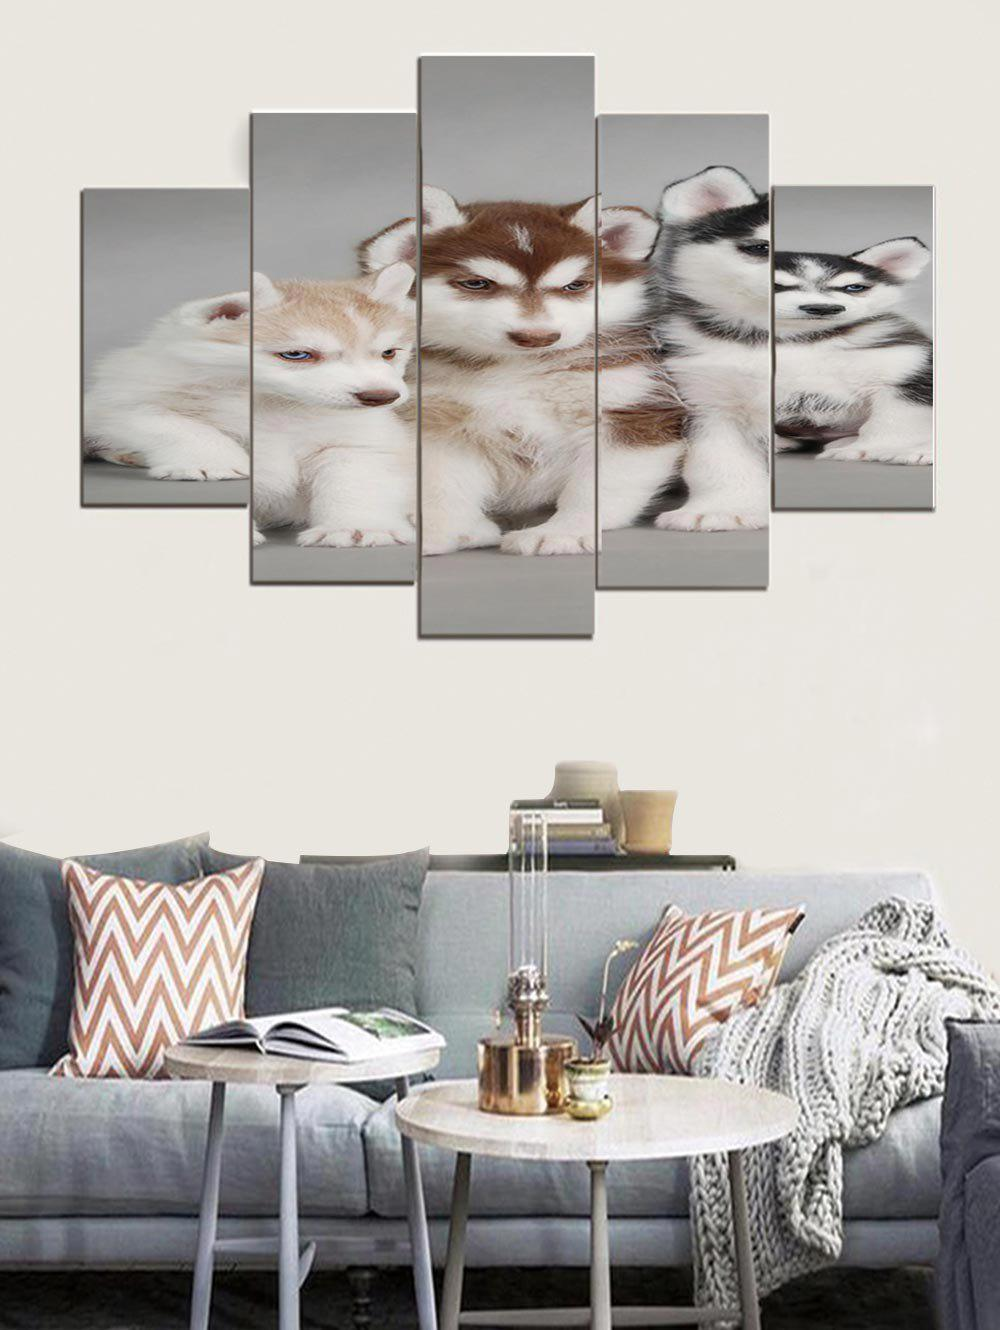 2018 Husky Puppies Print Split Wall Hanging Paintings In Multi 1pc:8 ...